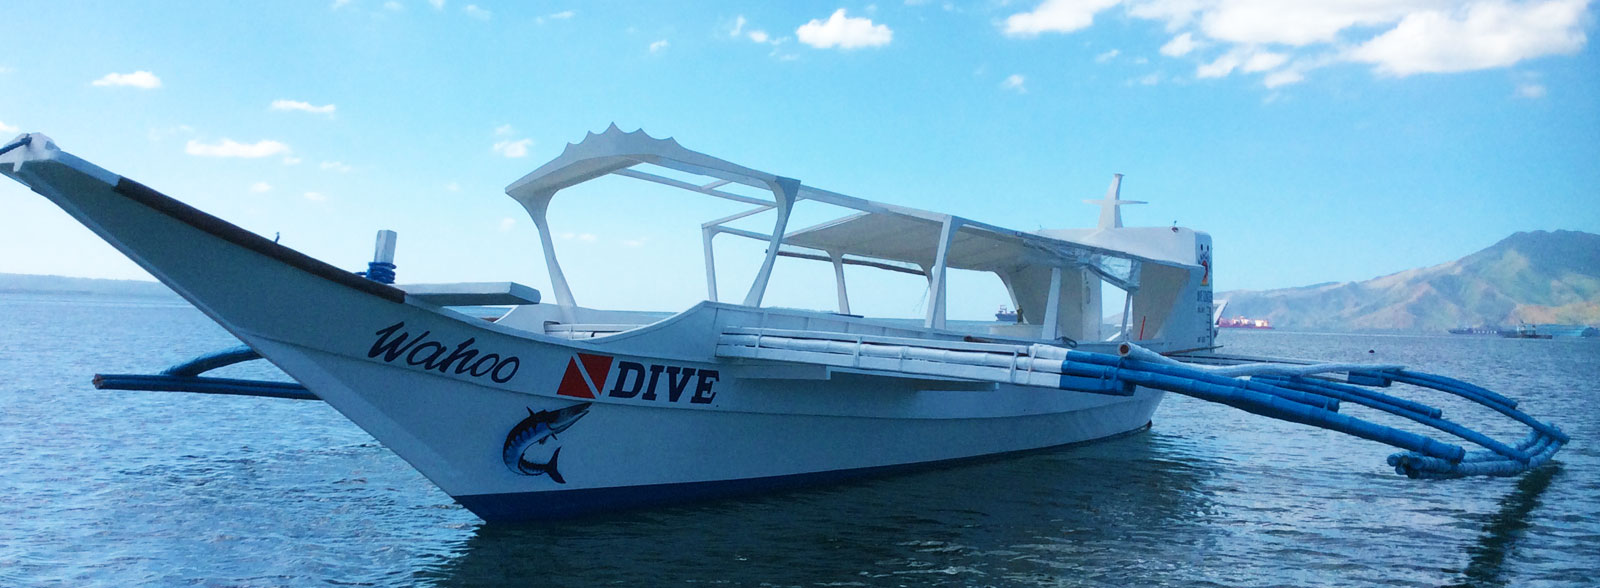 mangos dive center dive boat subic bay philippines